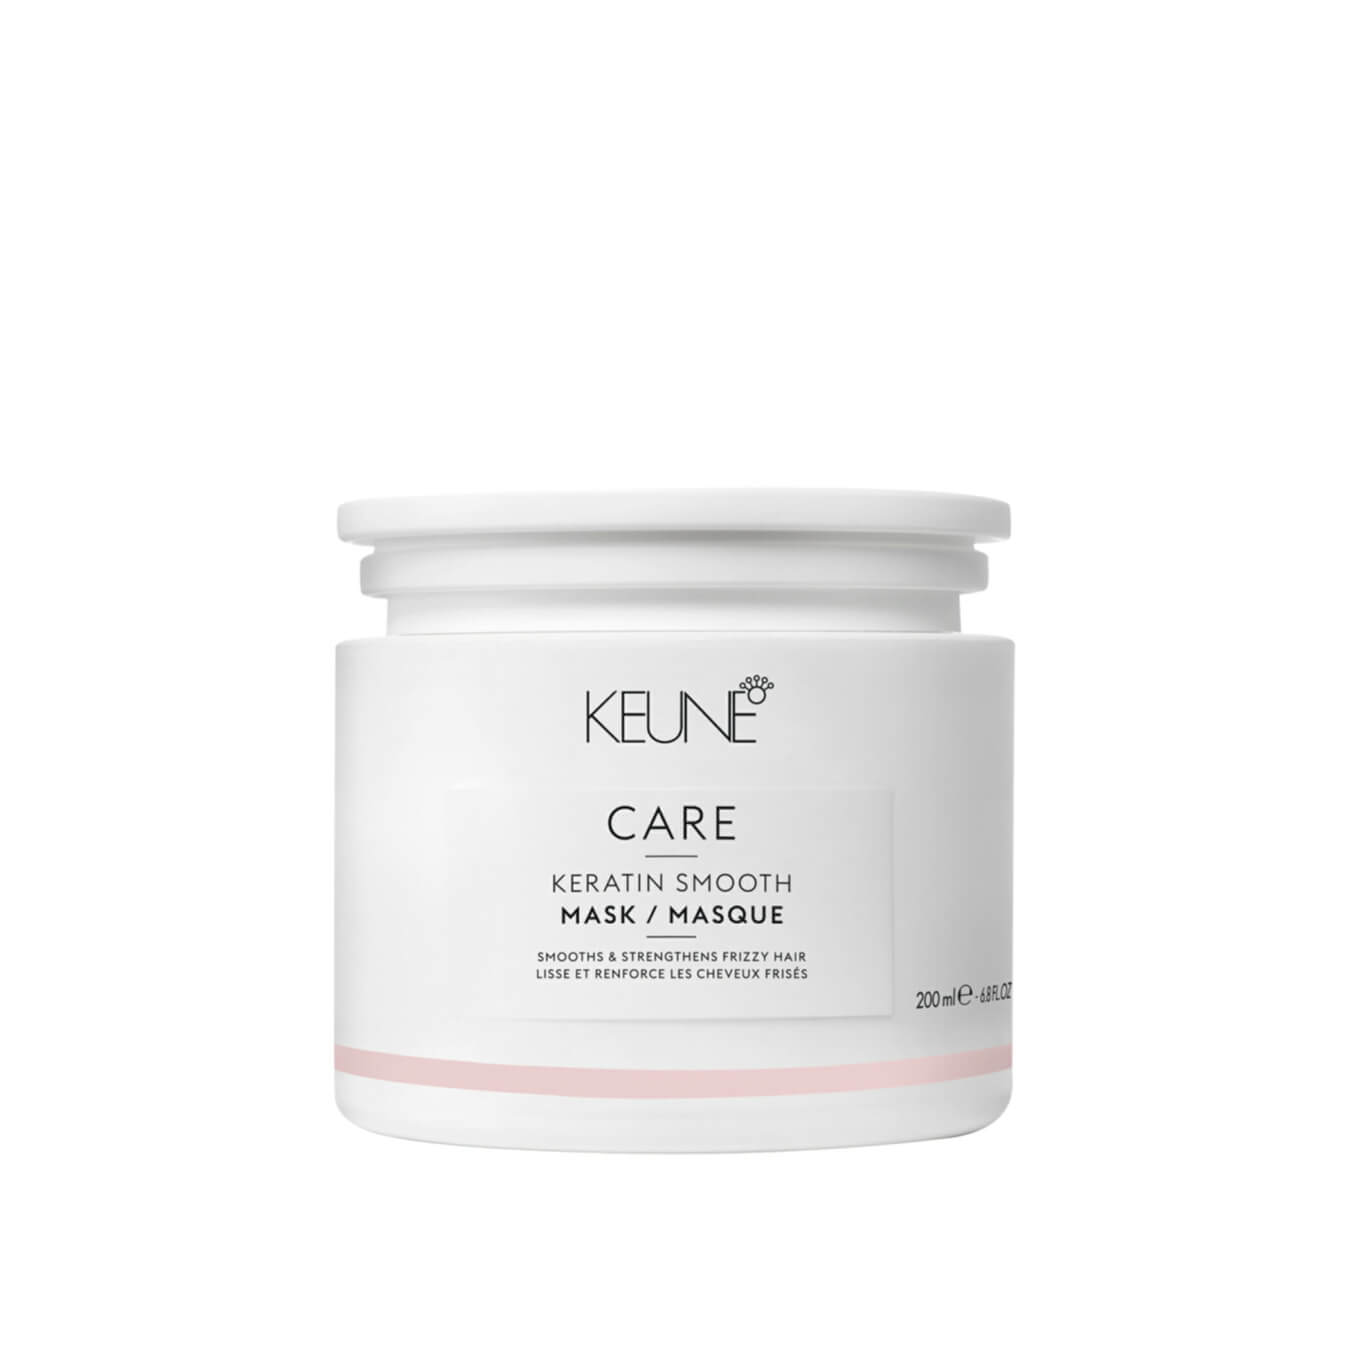 Koop Keune Care Keratin Smooth Mask 200ml